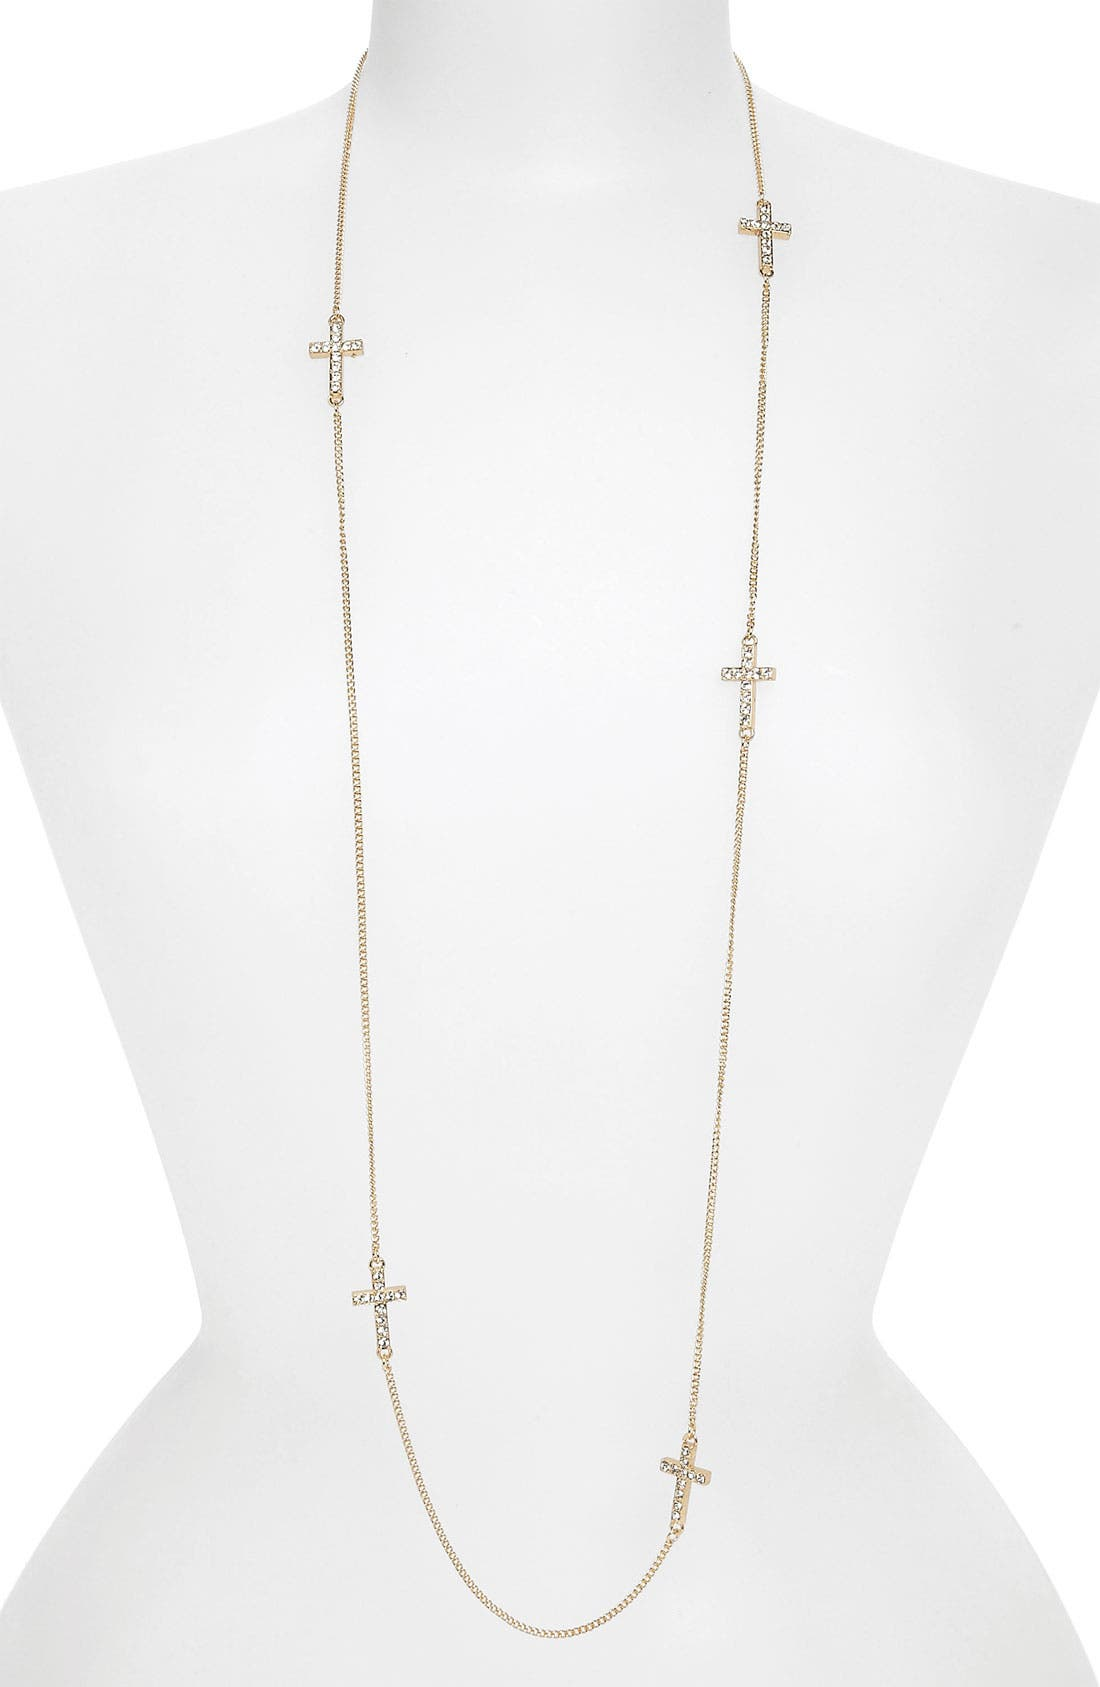 Alternate Image 1 Selected - BP. Rhinestone Cross Layering Necklace